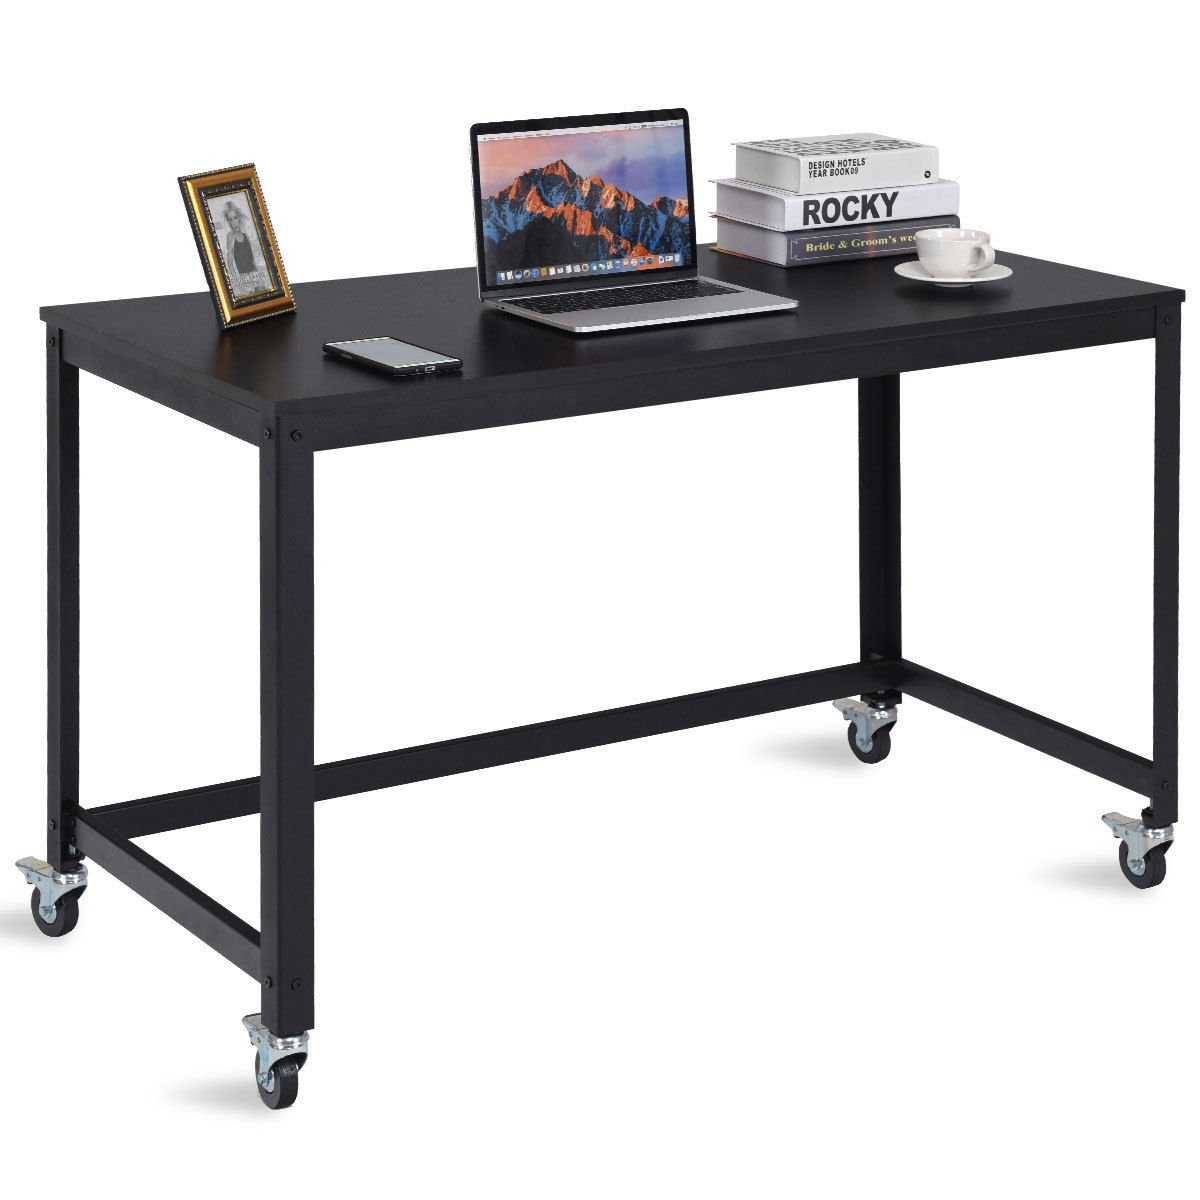 TANGKULA Computer Desk Wood Portable Compact Simple Style Home Office Study Table Writing Desk Workstatation with 4 Smooth Wheels, Home Office Collection Work Table (Black)